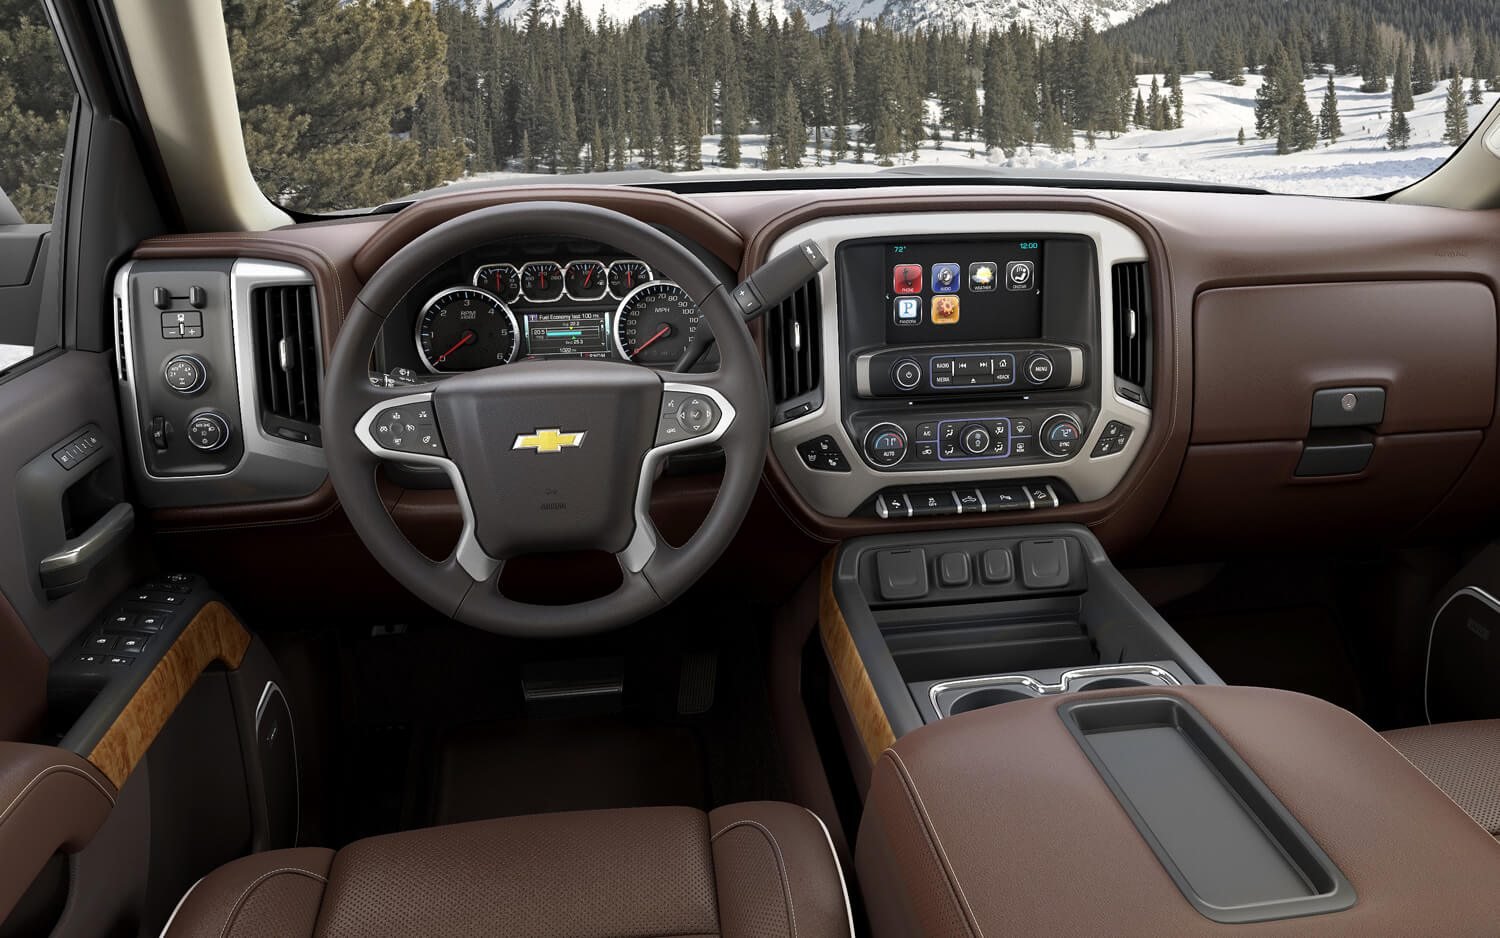 chevy reaper interior - photo #1